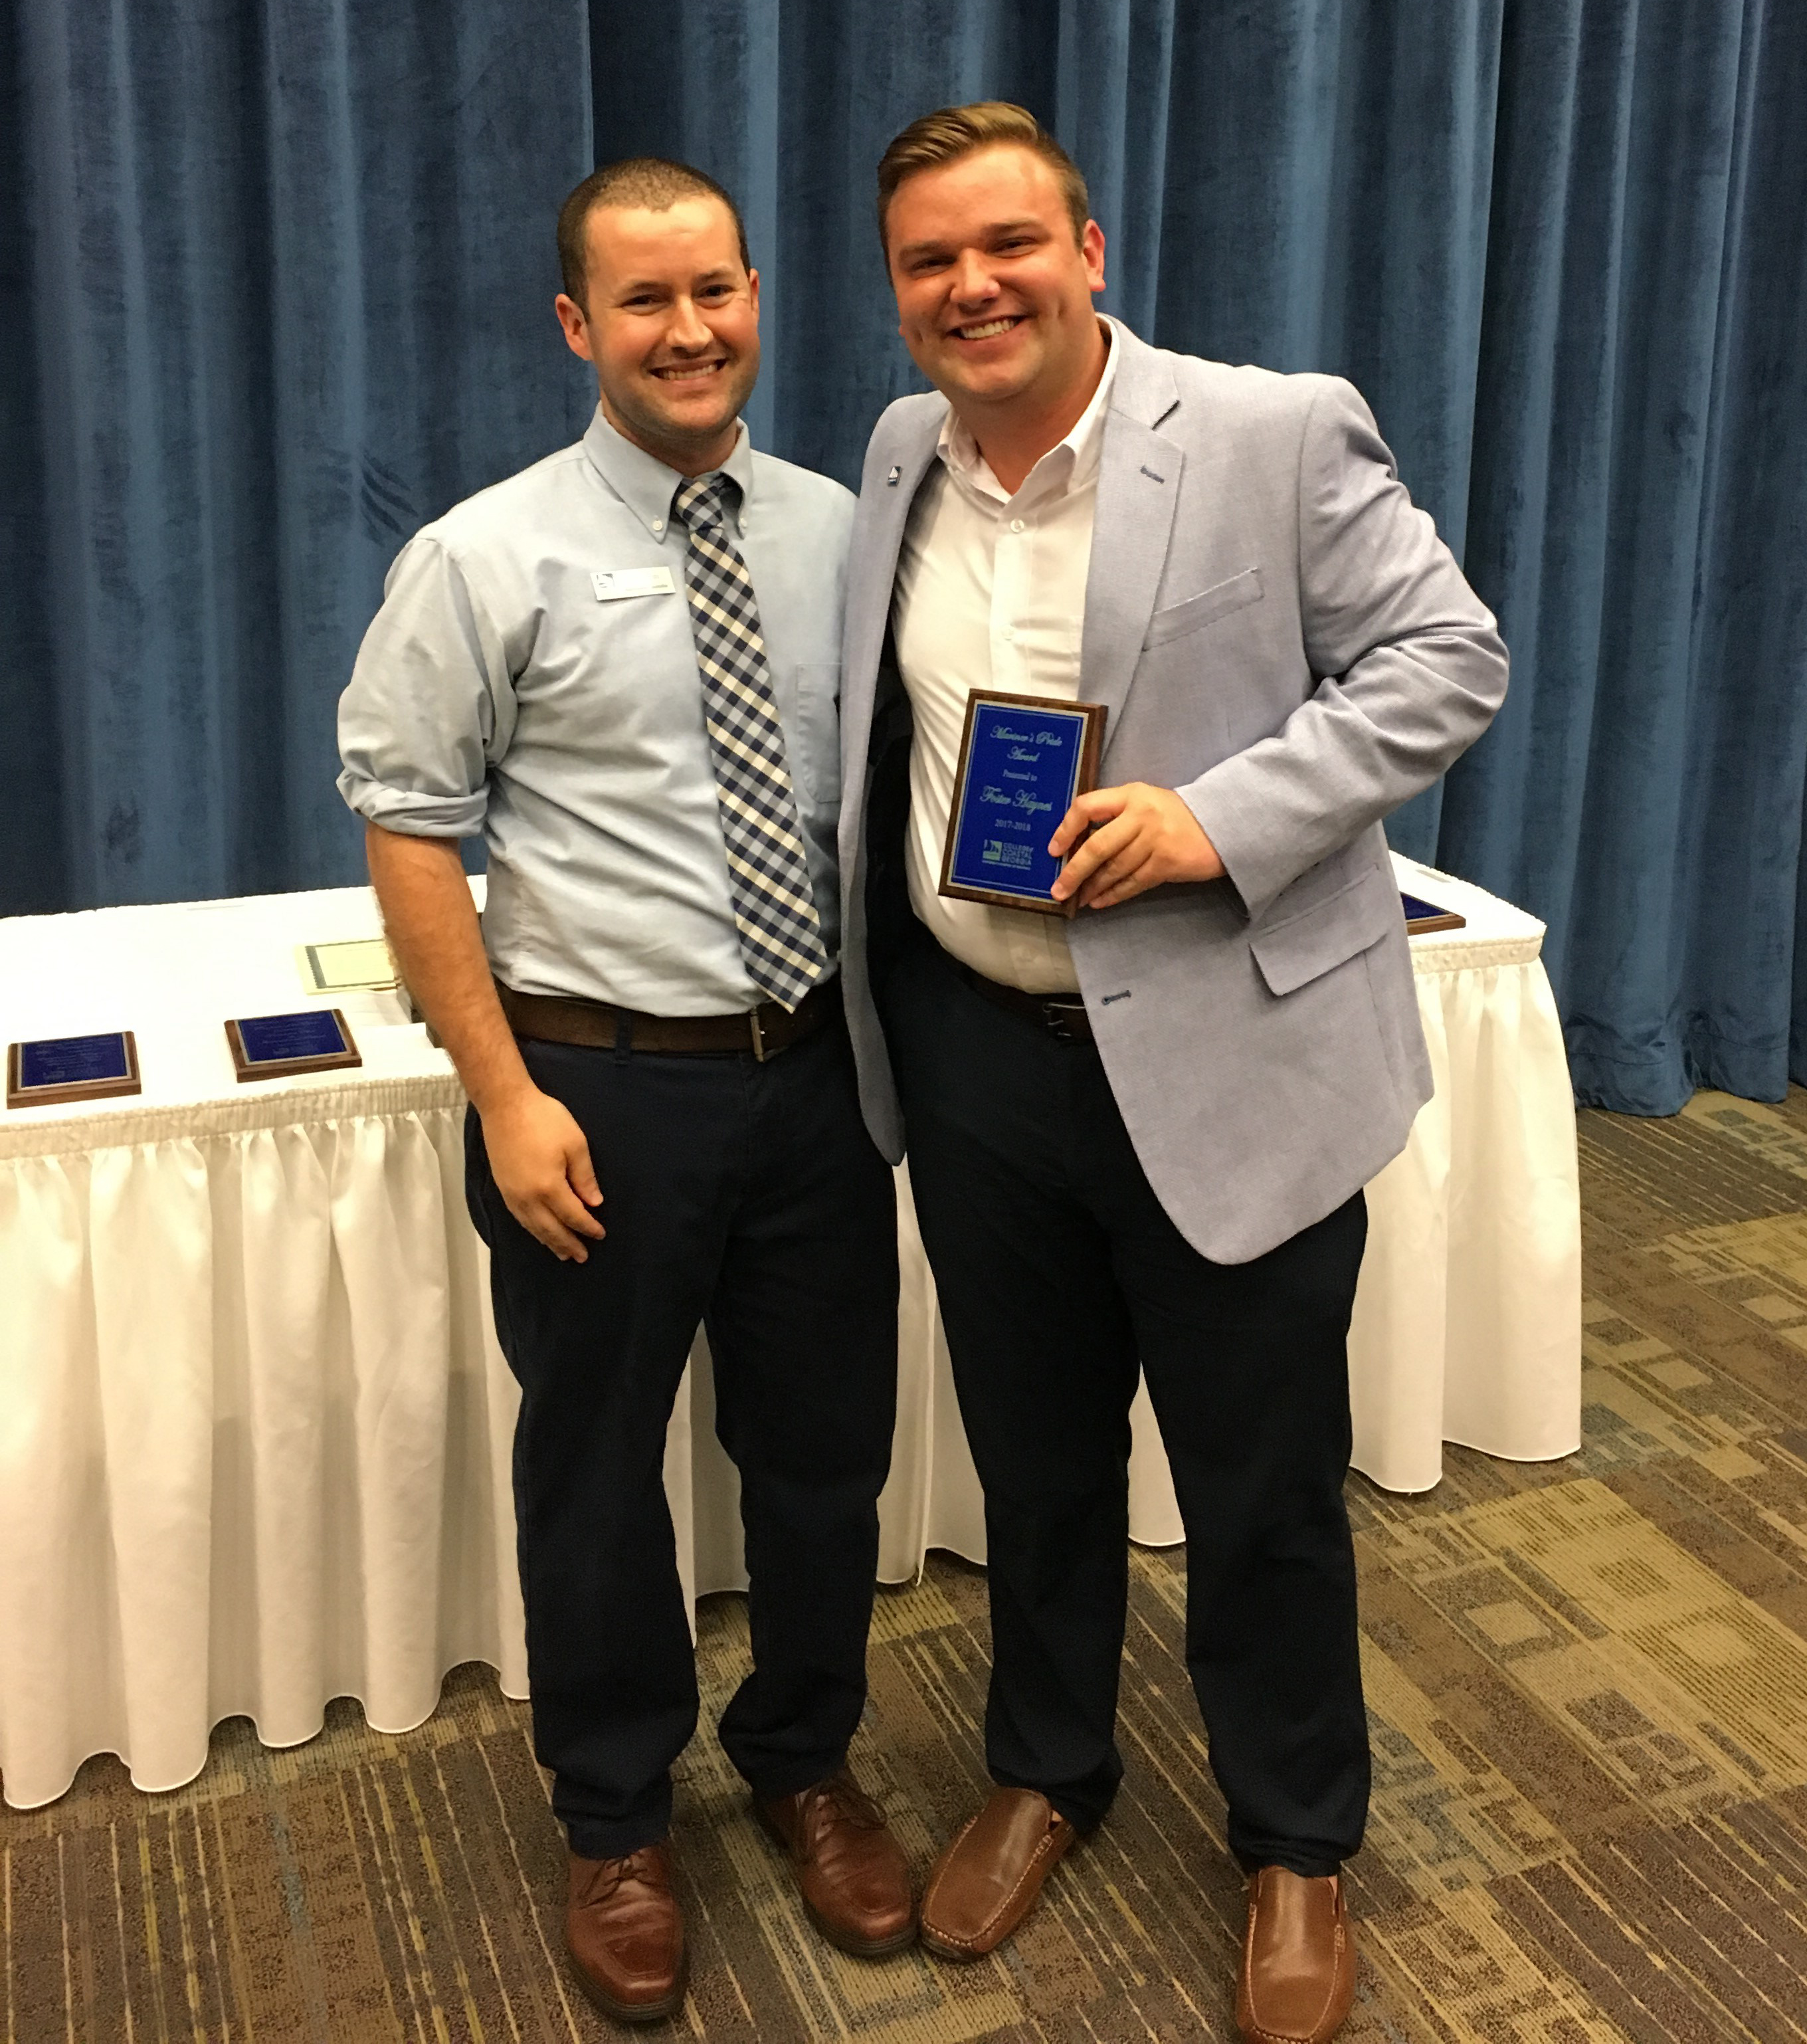 College of Coastal Georgia student Foster Hayes receives the Mariner's Pride Award at the 7th Annual Student Affairs Leadership Awards ceremony. Hayes was also inducted into the Student Hall of Fame.